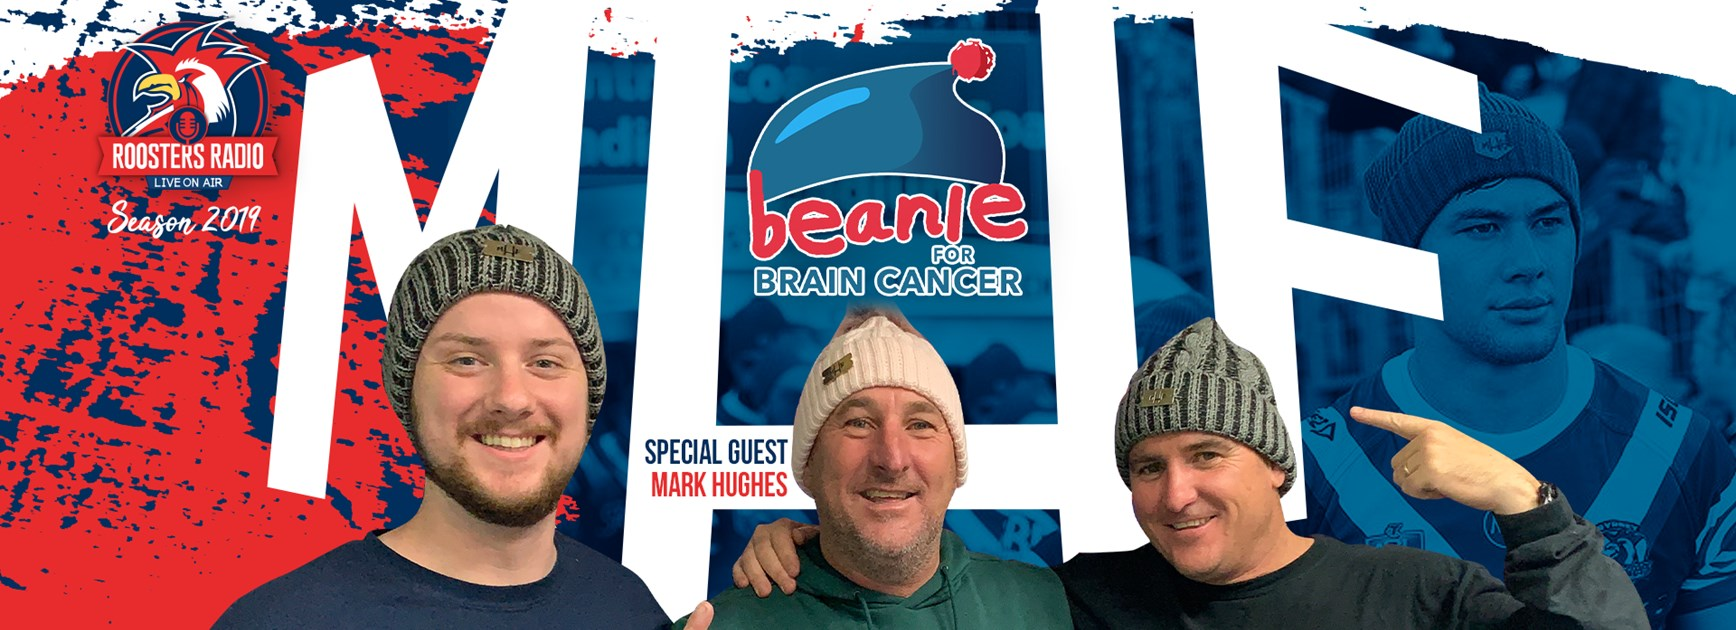 Roosters Radio | Beanie For Brain Cancer Round